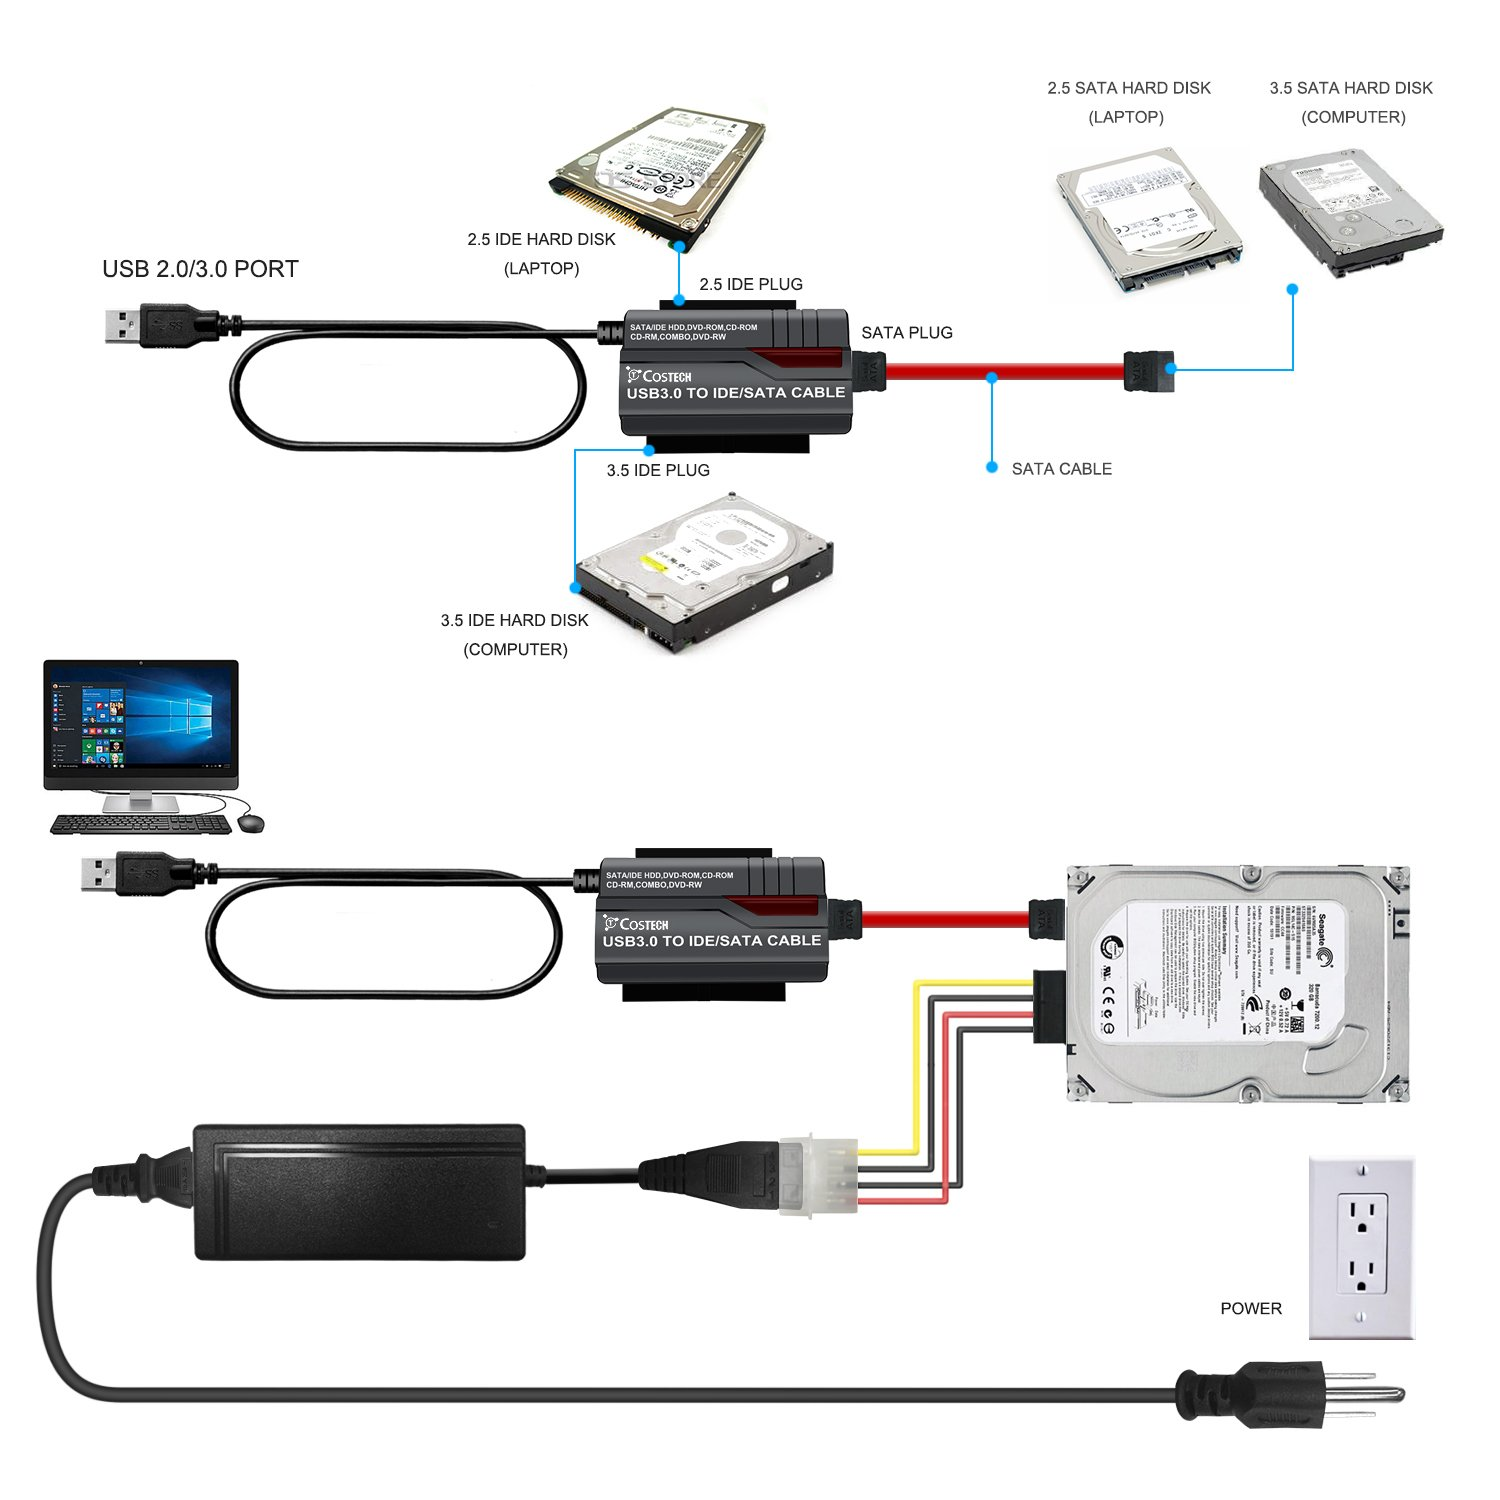 Usb Wiring Diagram Wikipedia : Sata cable pinout diagram wiring images